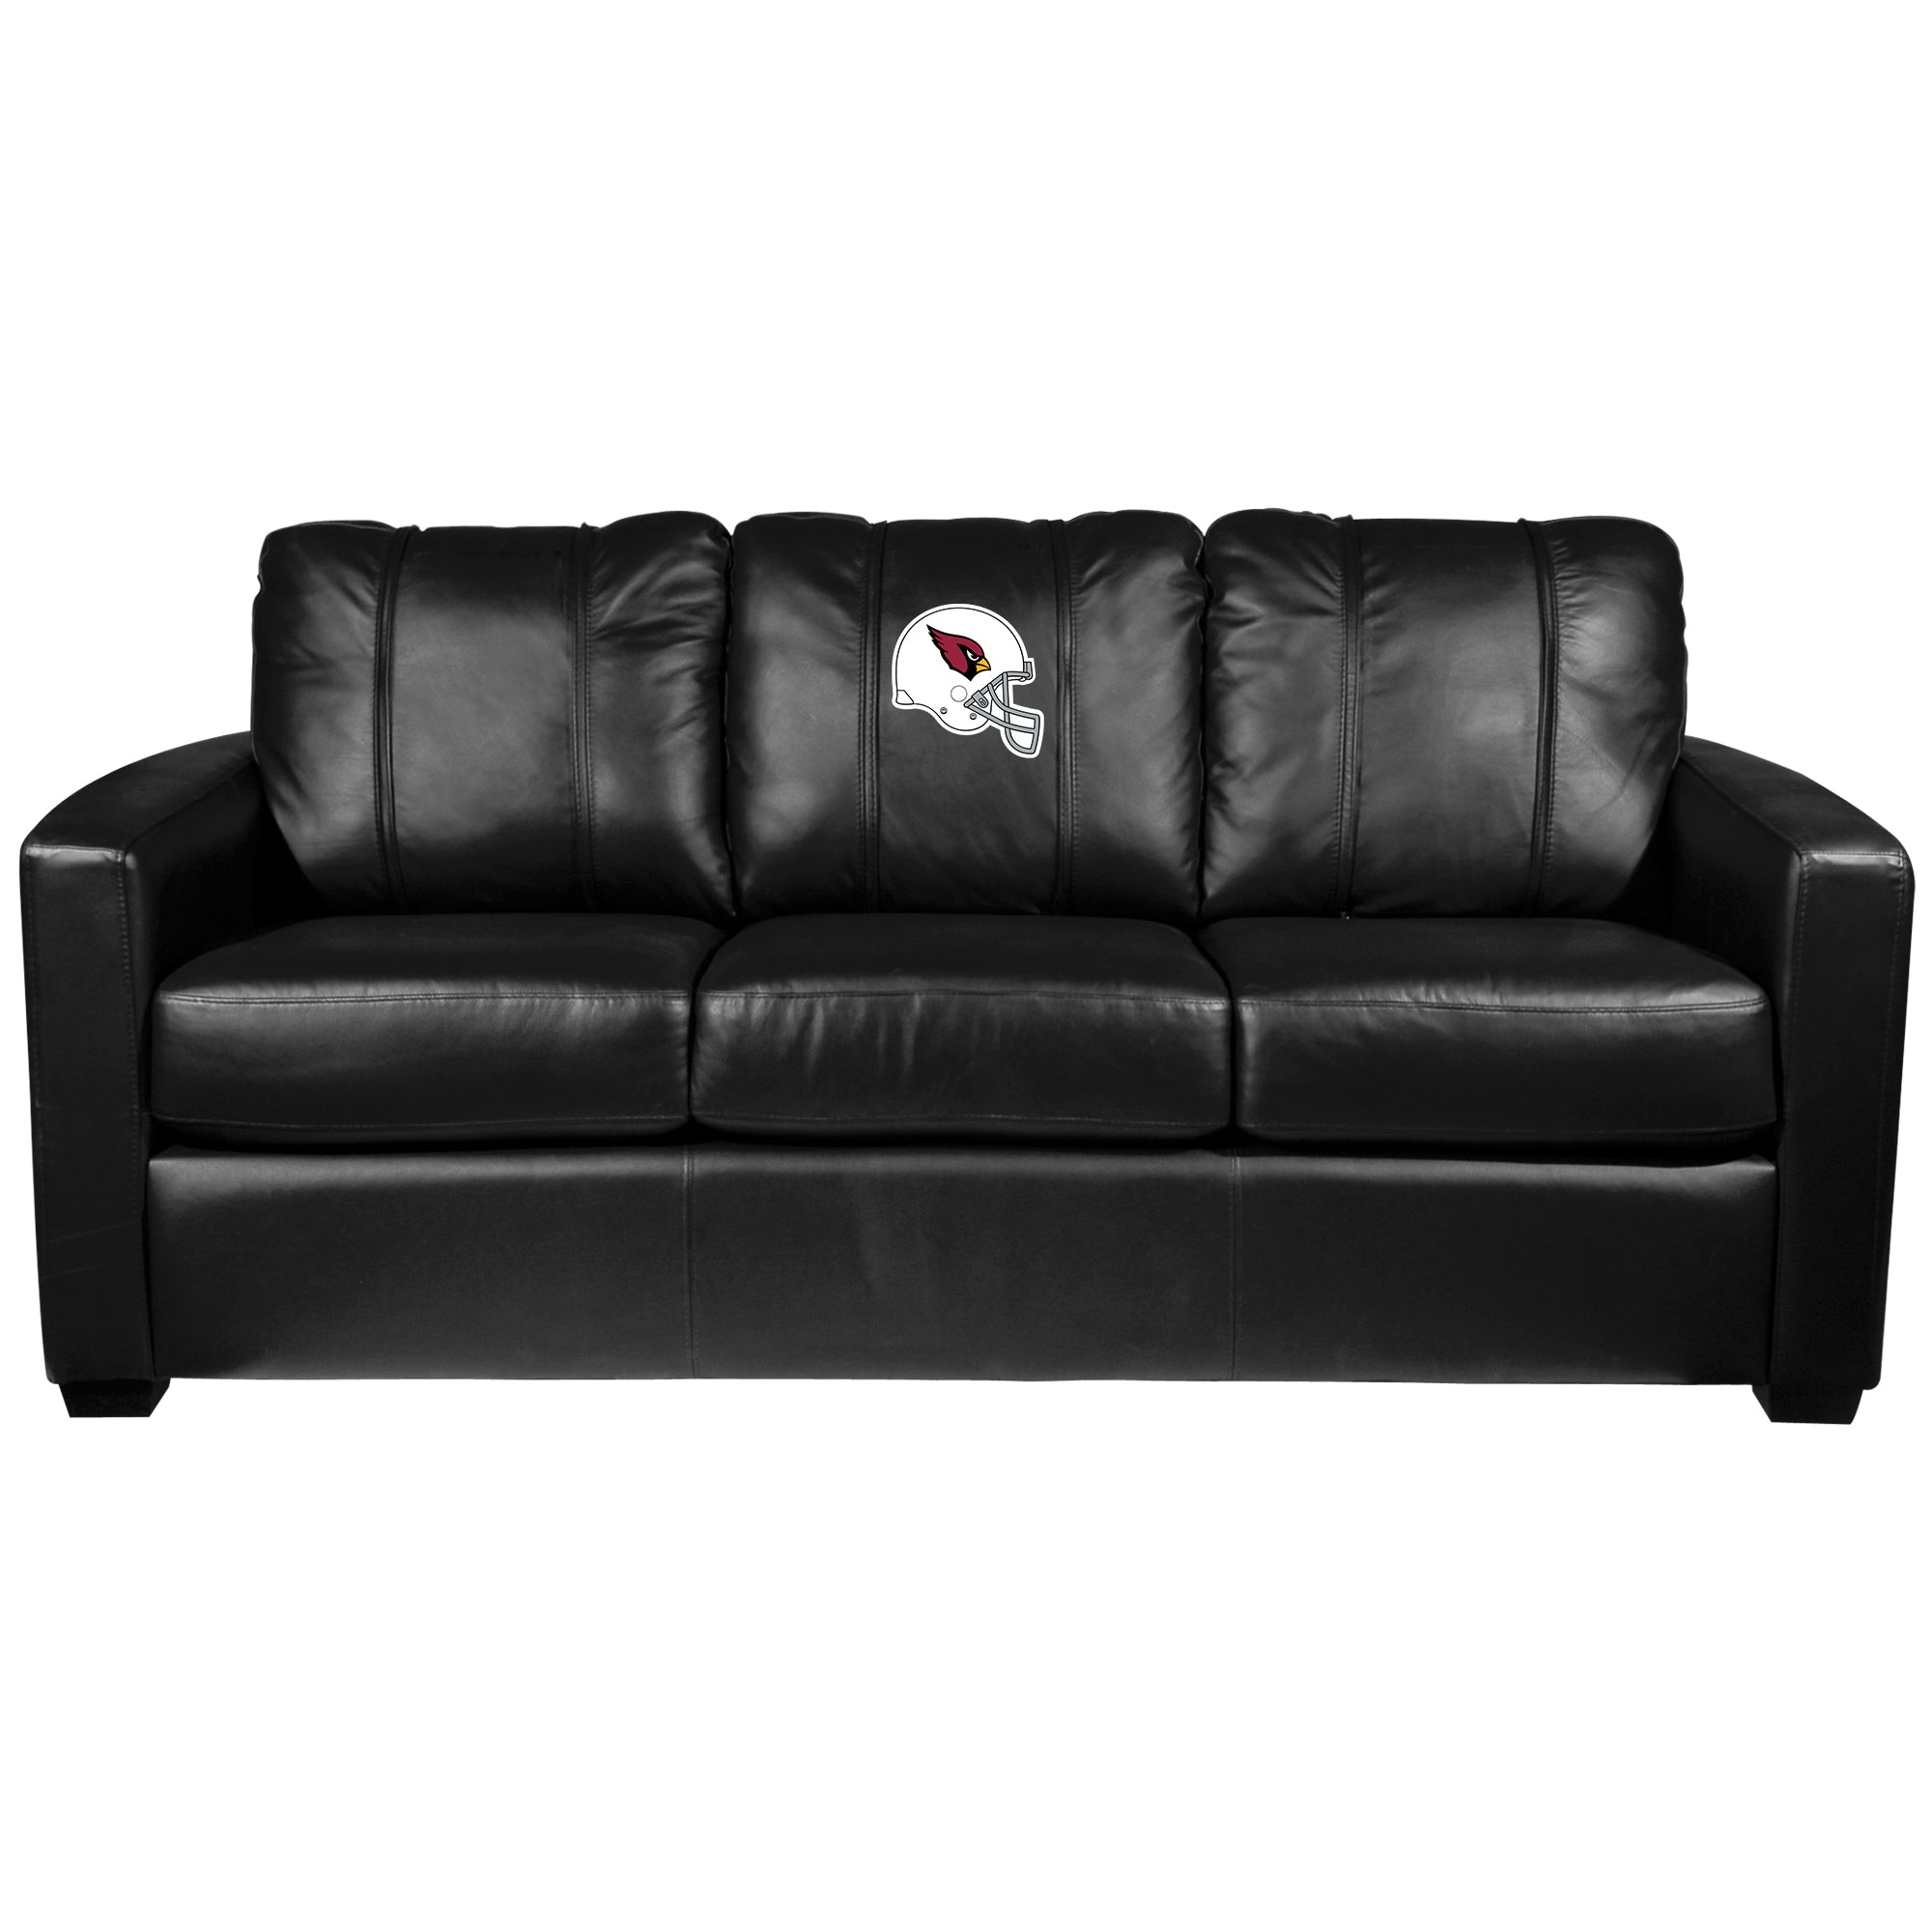 Silver Sofa with Arizona Cardinals Helmet Logo